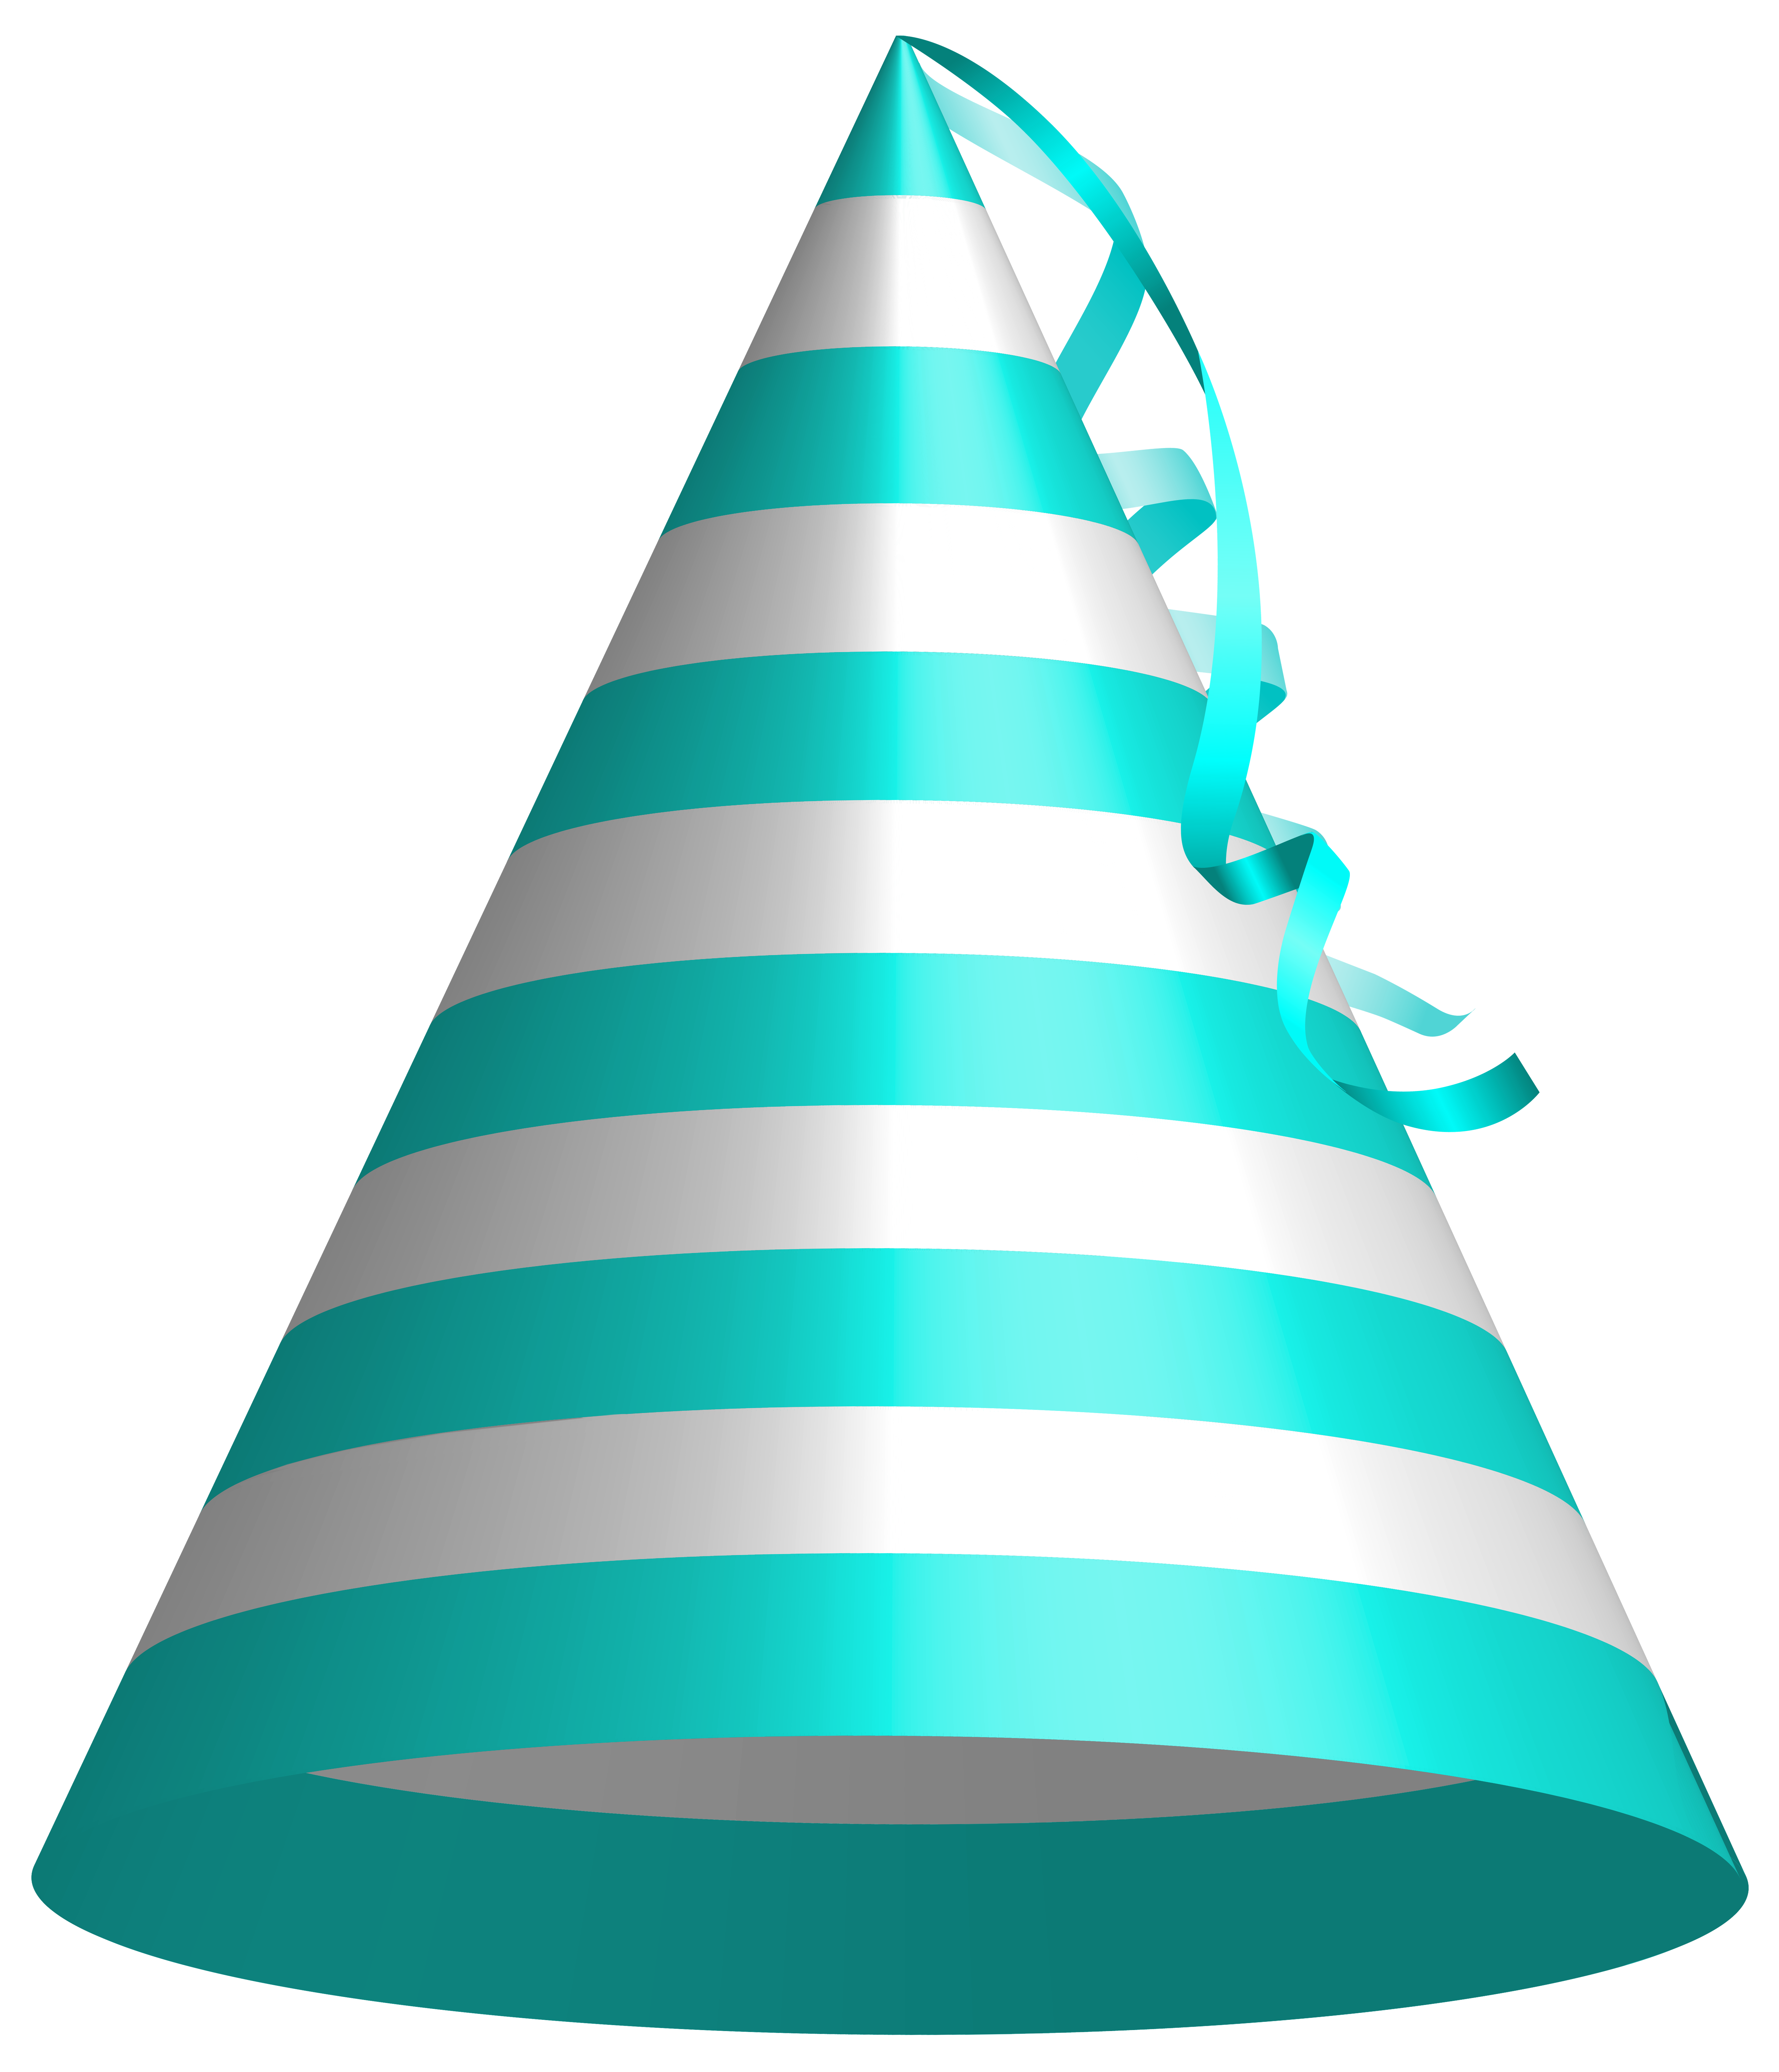 Party png image gallery. Clipart birthday hat